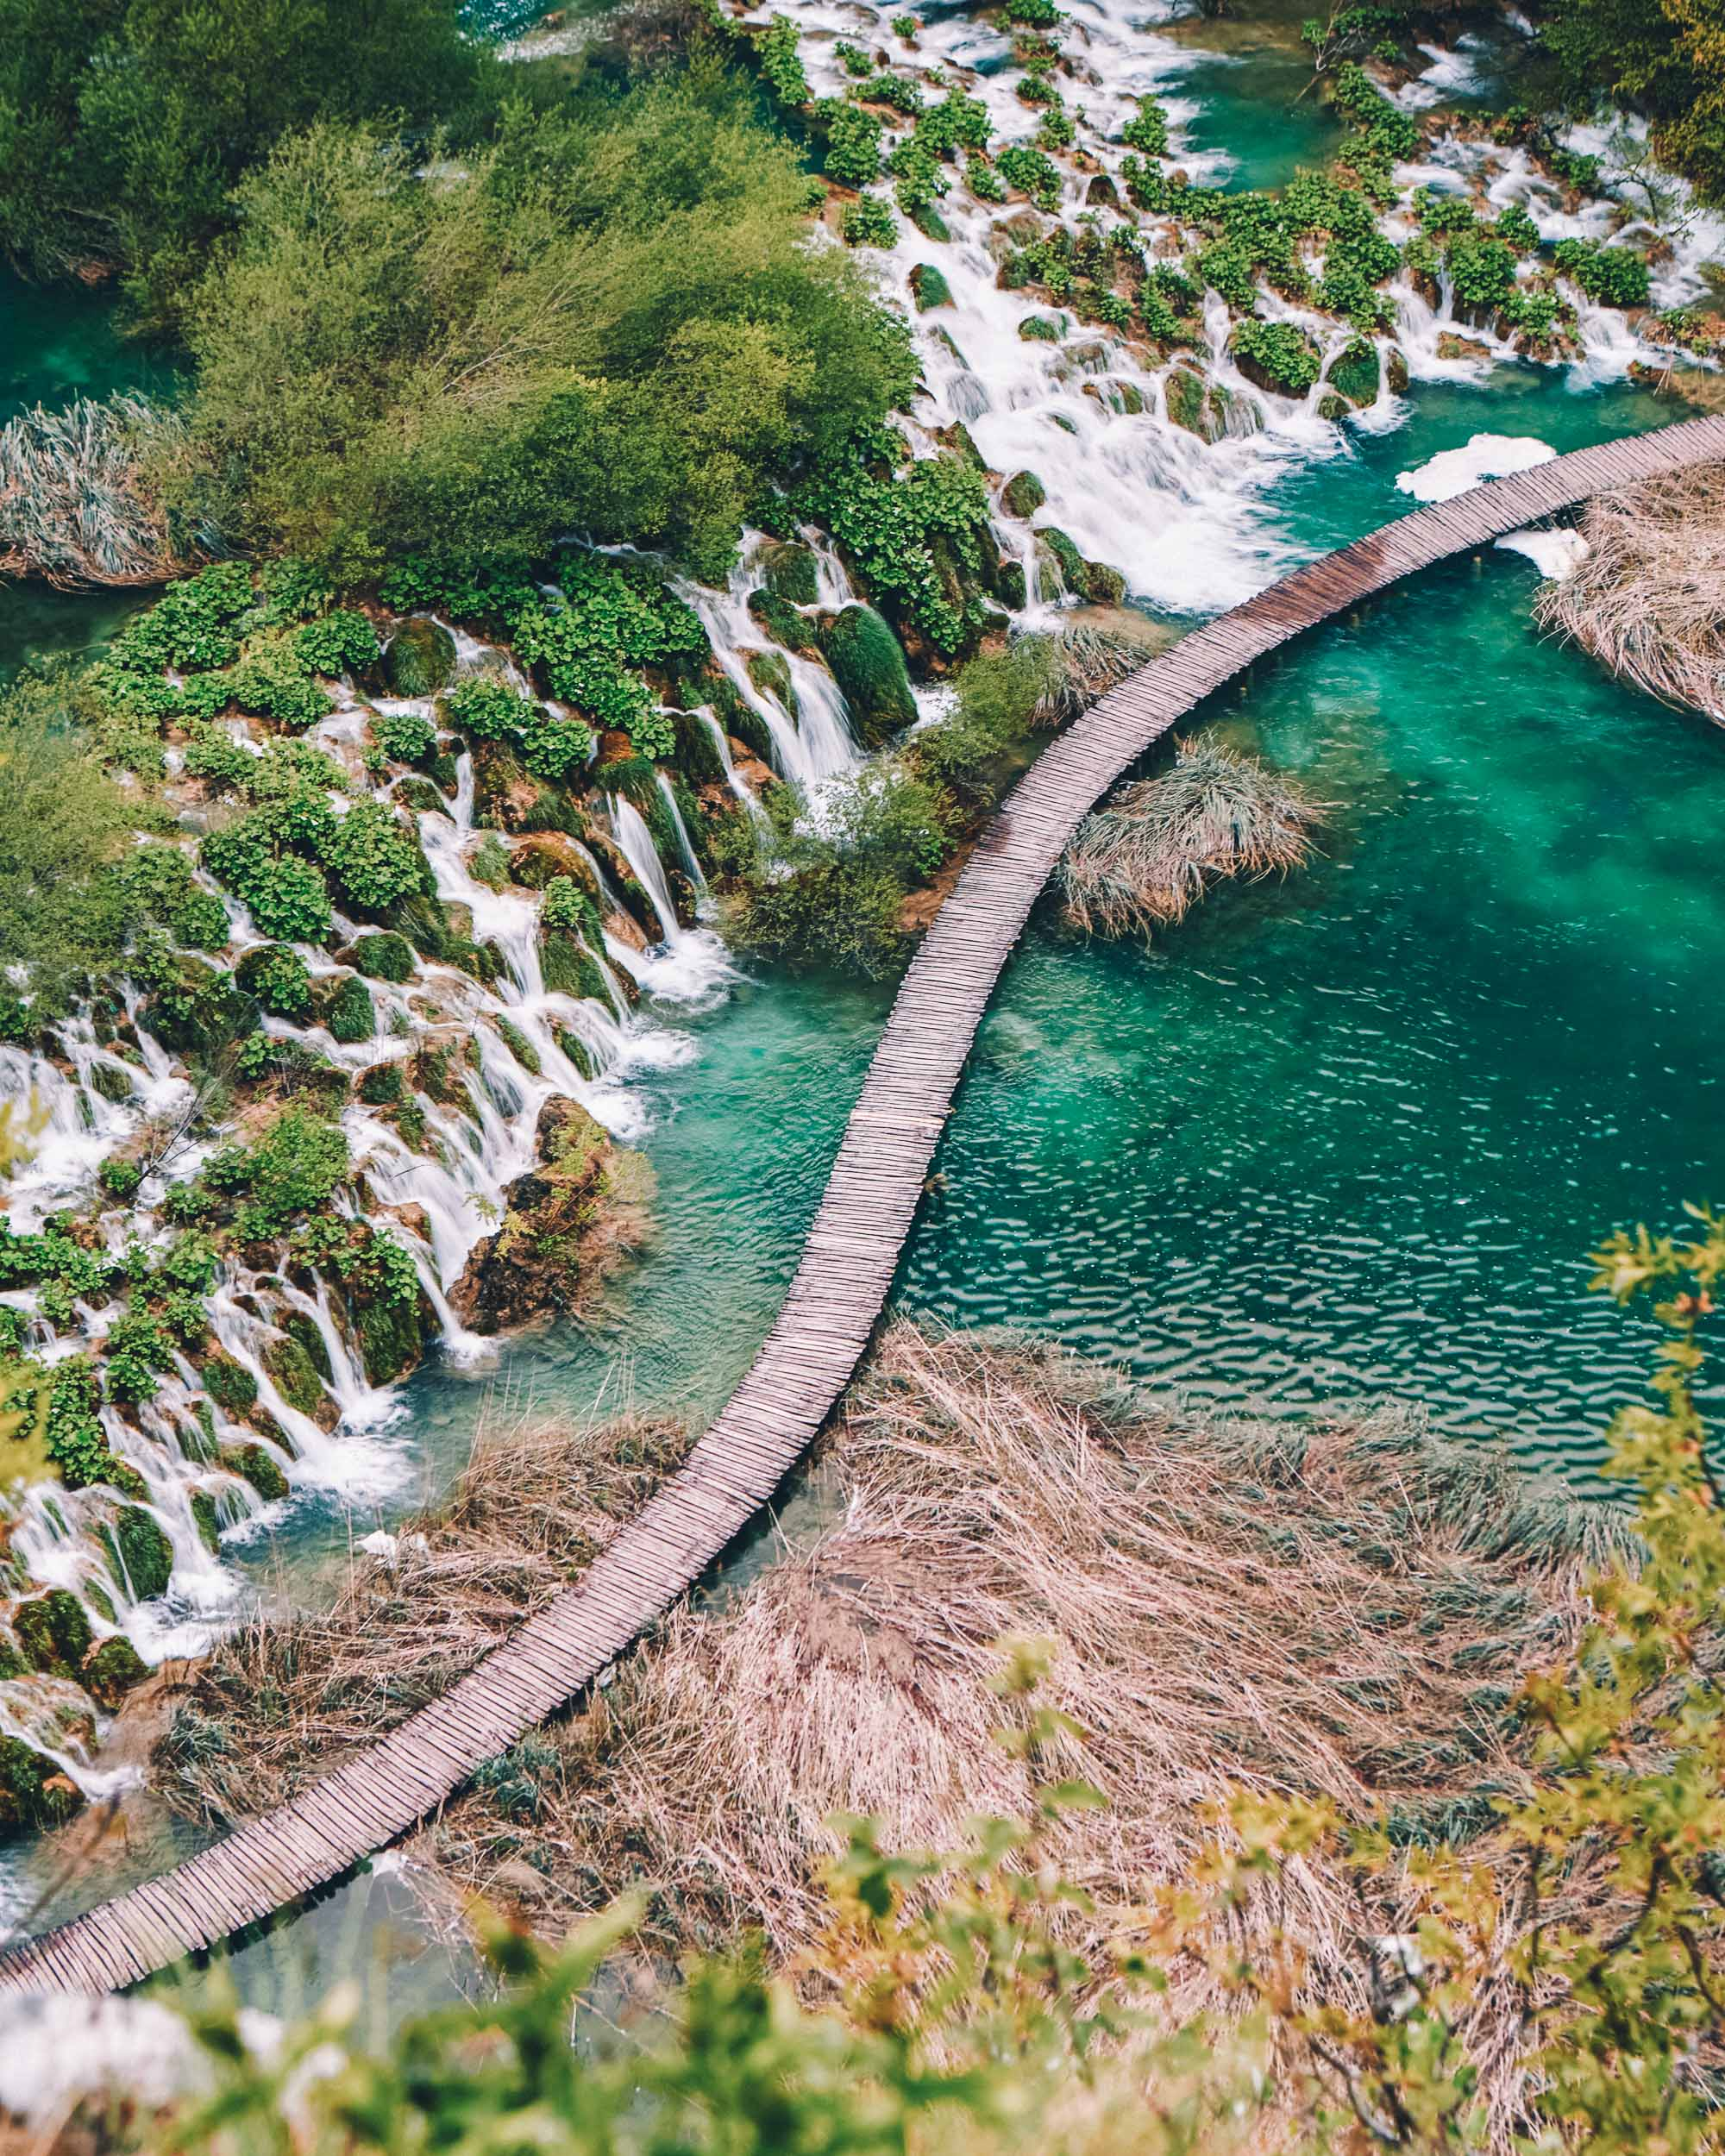 Plitvice lakes in Croatia for our three month Europe road trip